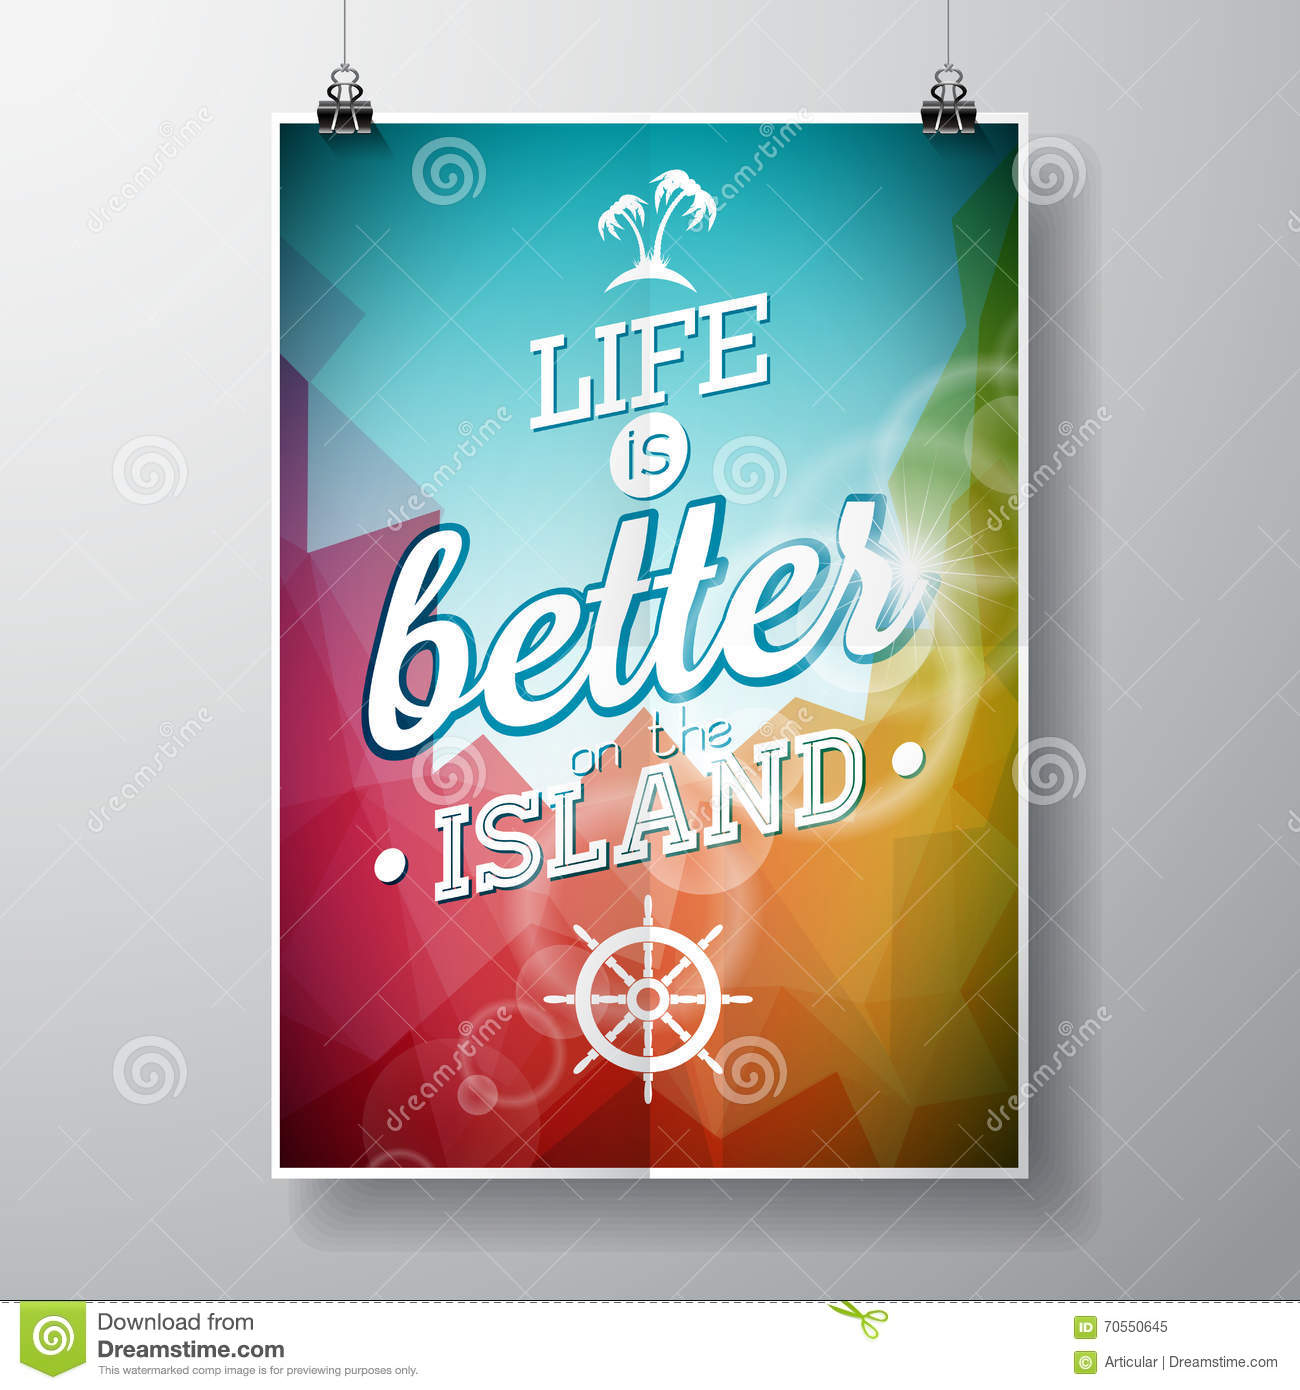 Life is better on the island inspiration quote on abstract color life is better on the island inspiration quote on abstract color background vector typography design element for greeting cards a kristyandbryce Gallery